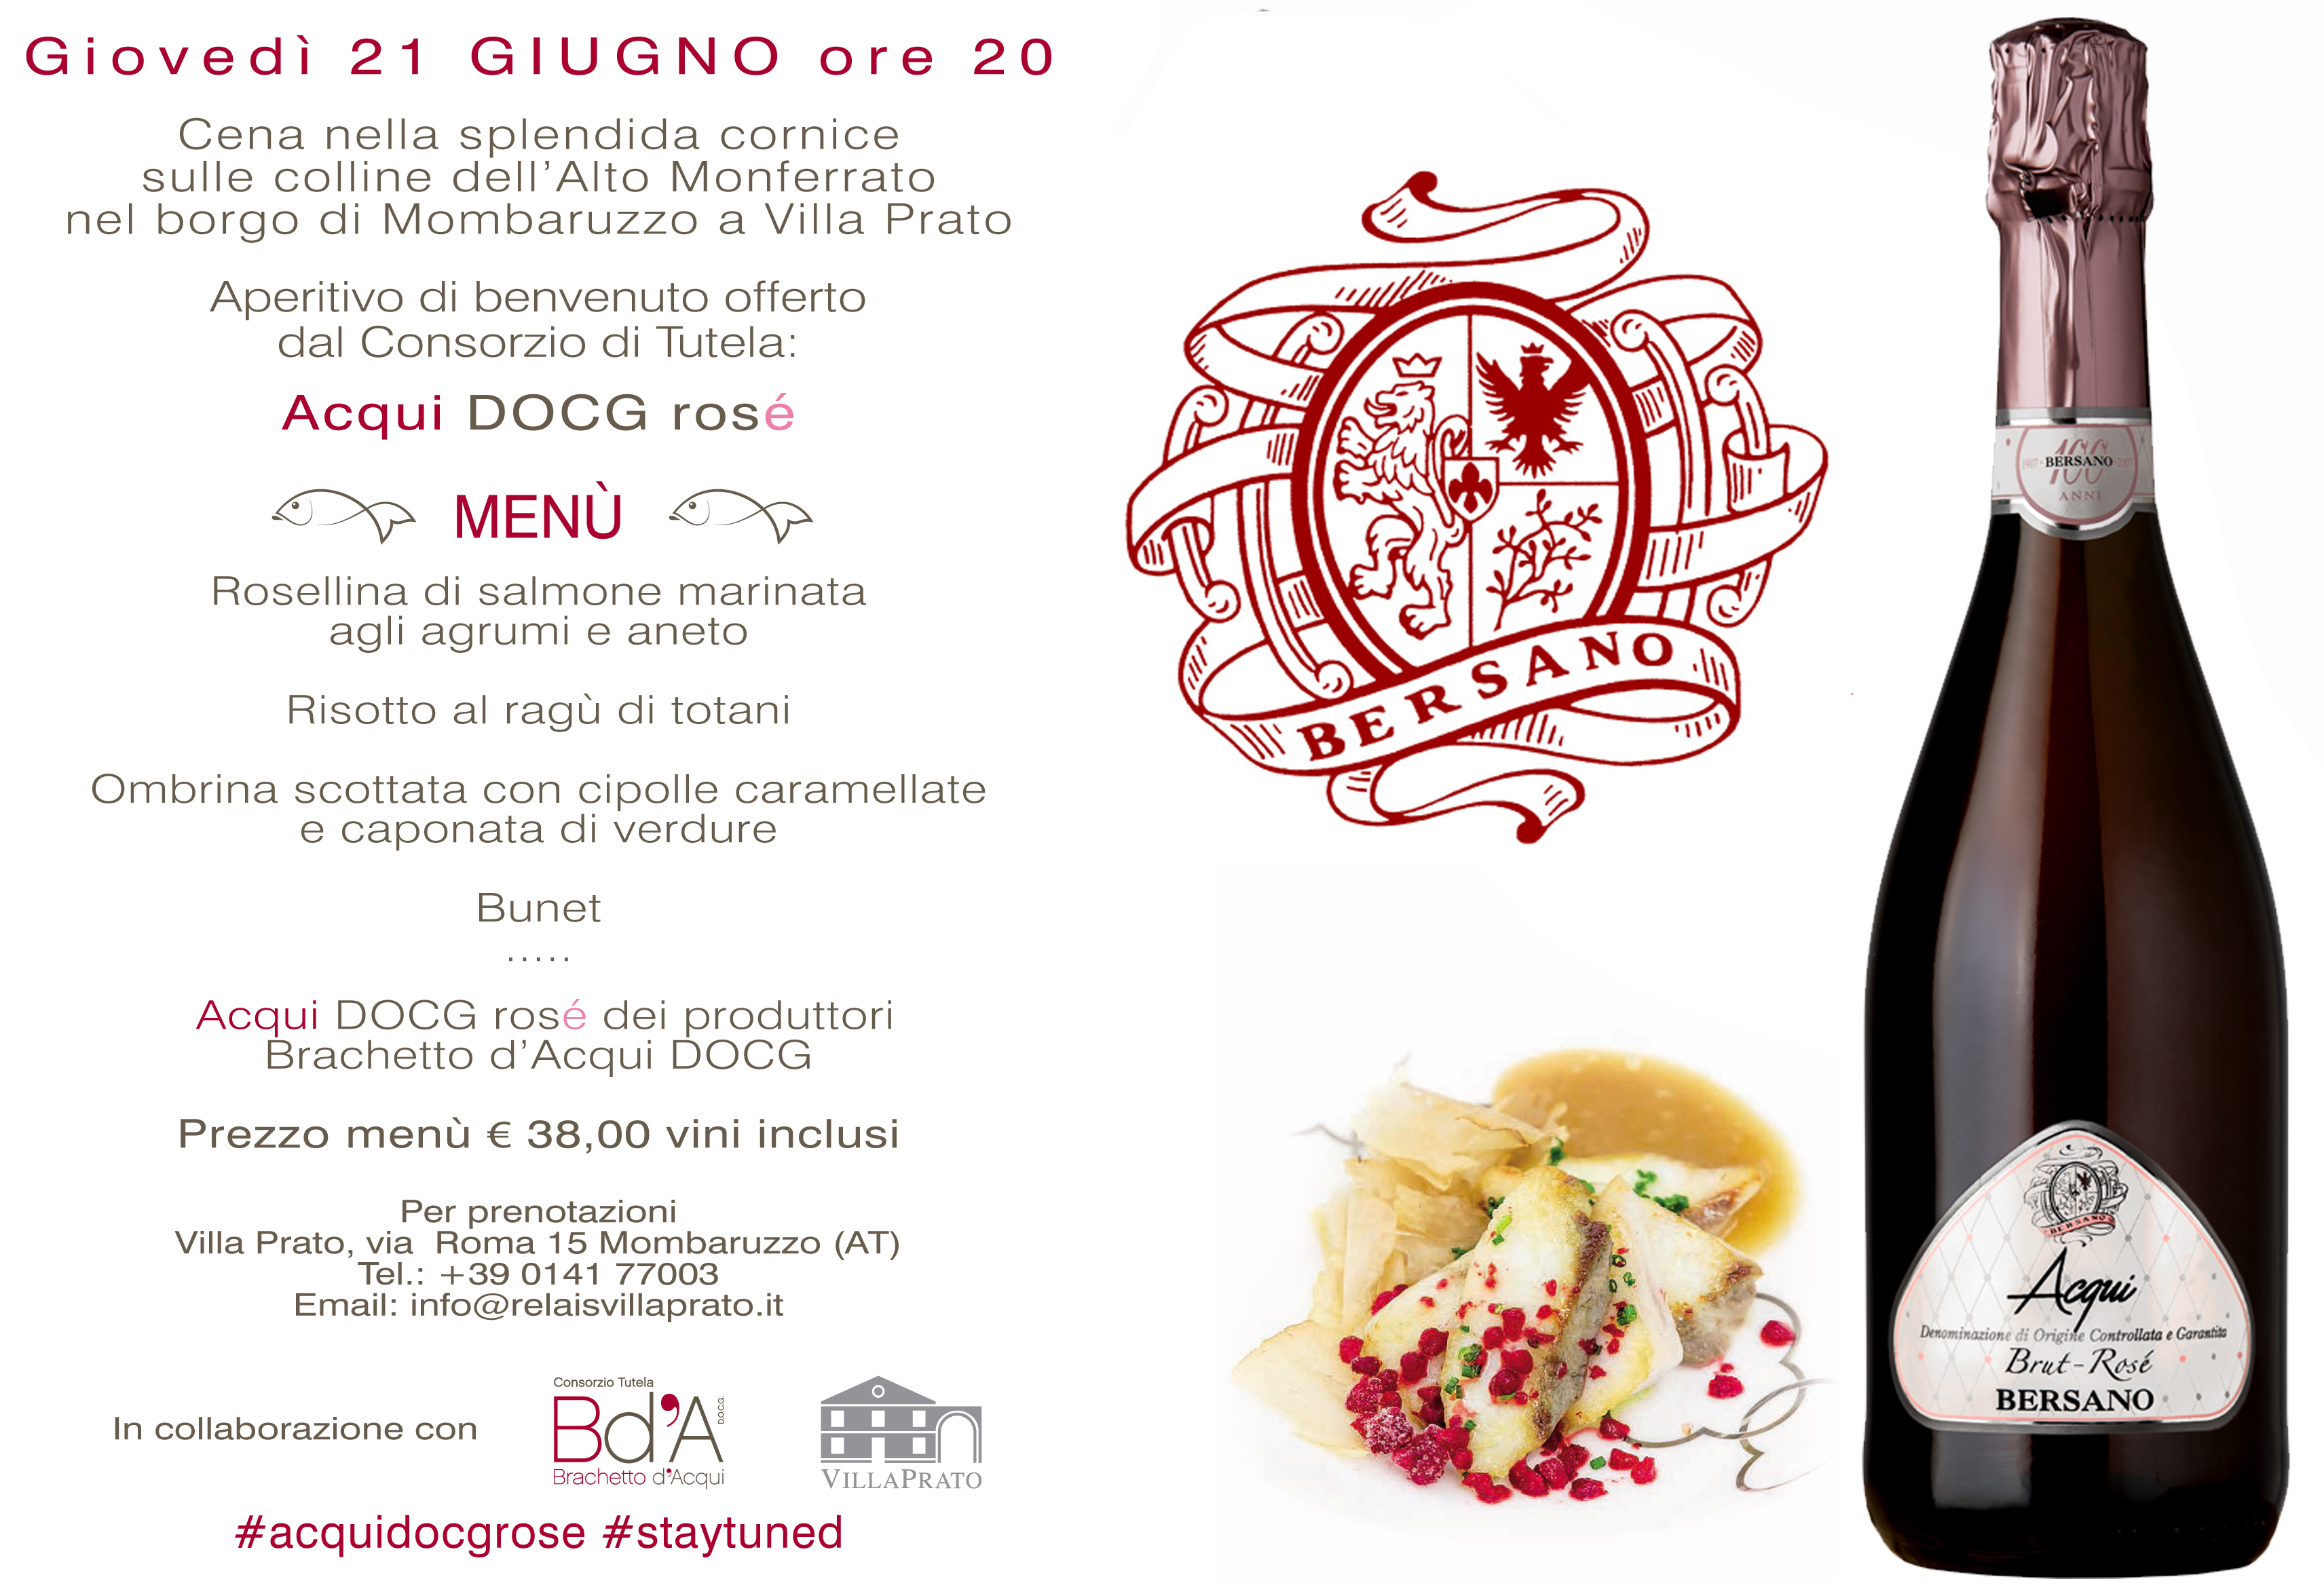 Aperitivo in collina con Acqui DOCG Rose' #acquidocgrose